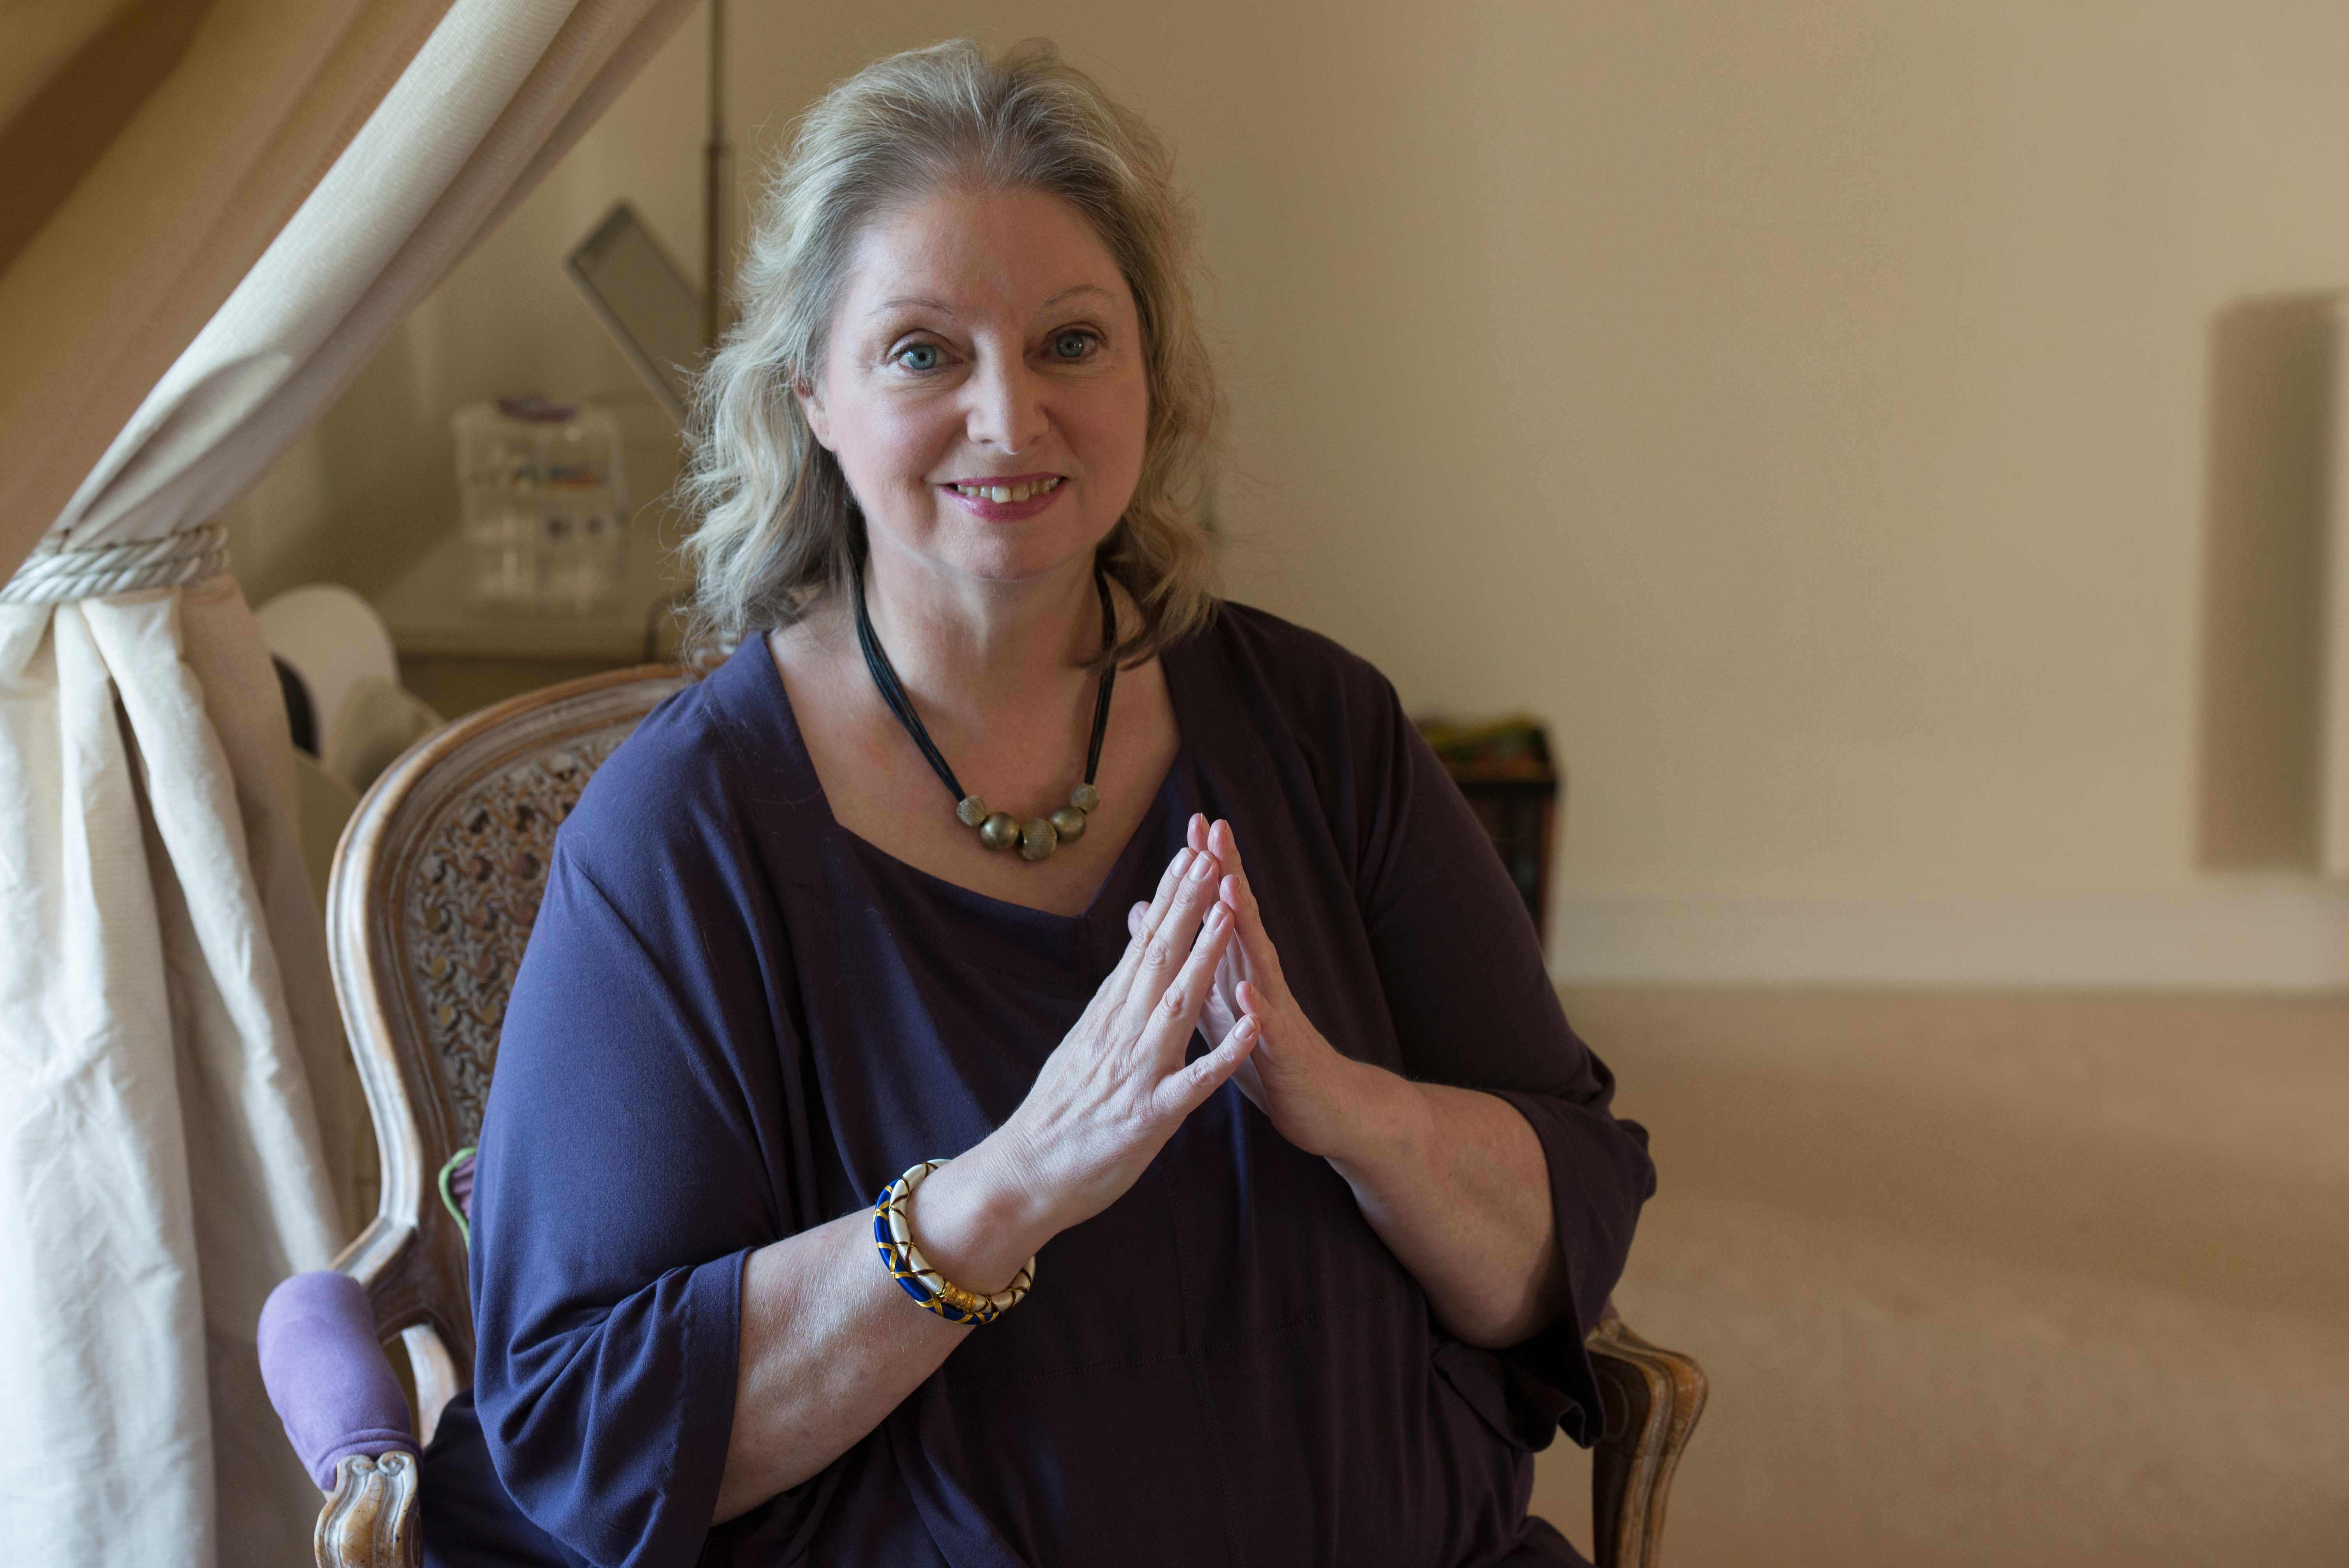 British writer Hilary Mantel photographed at home. (Photo by Lionel Derimais/Corbis Documentary/Getty Images)